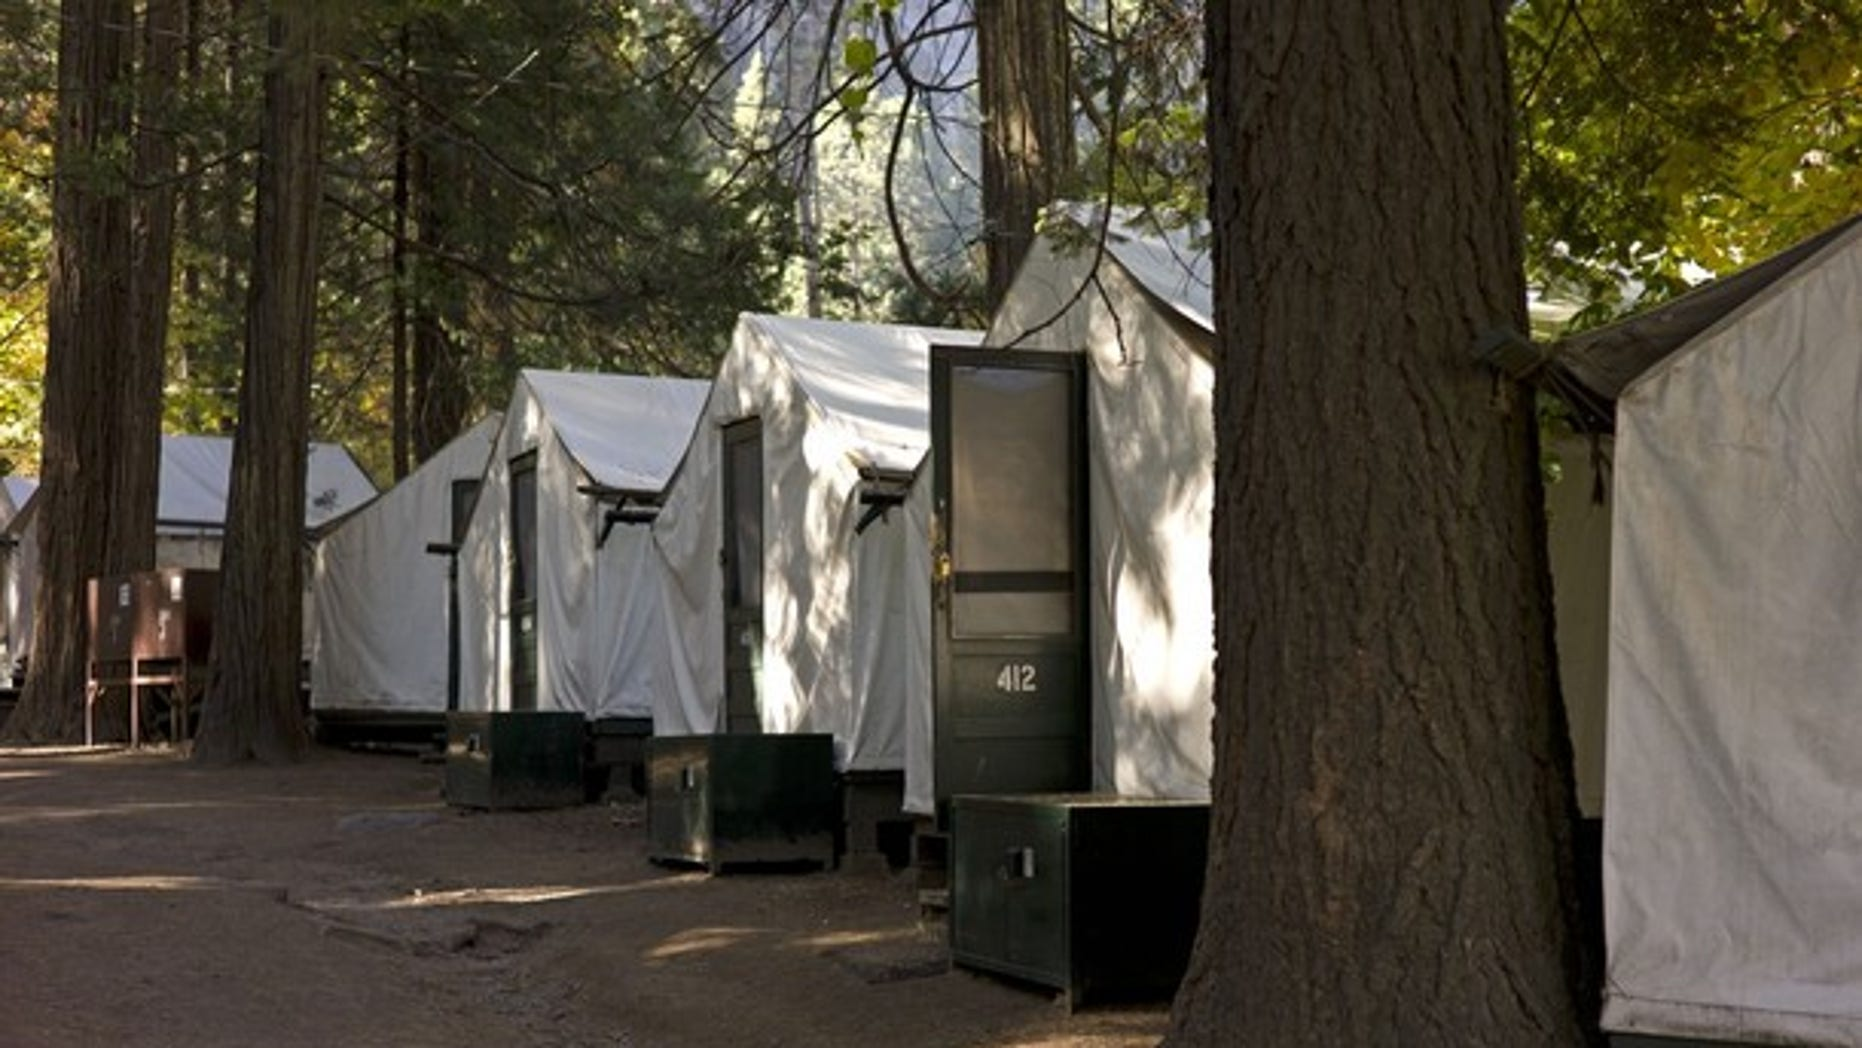 Oct. 23, 2011: Tents are seen in Curry Village in Yosemite National Park, Calif.